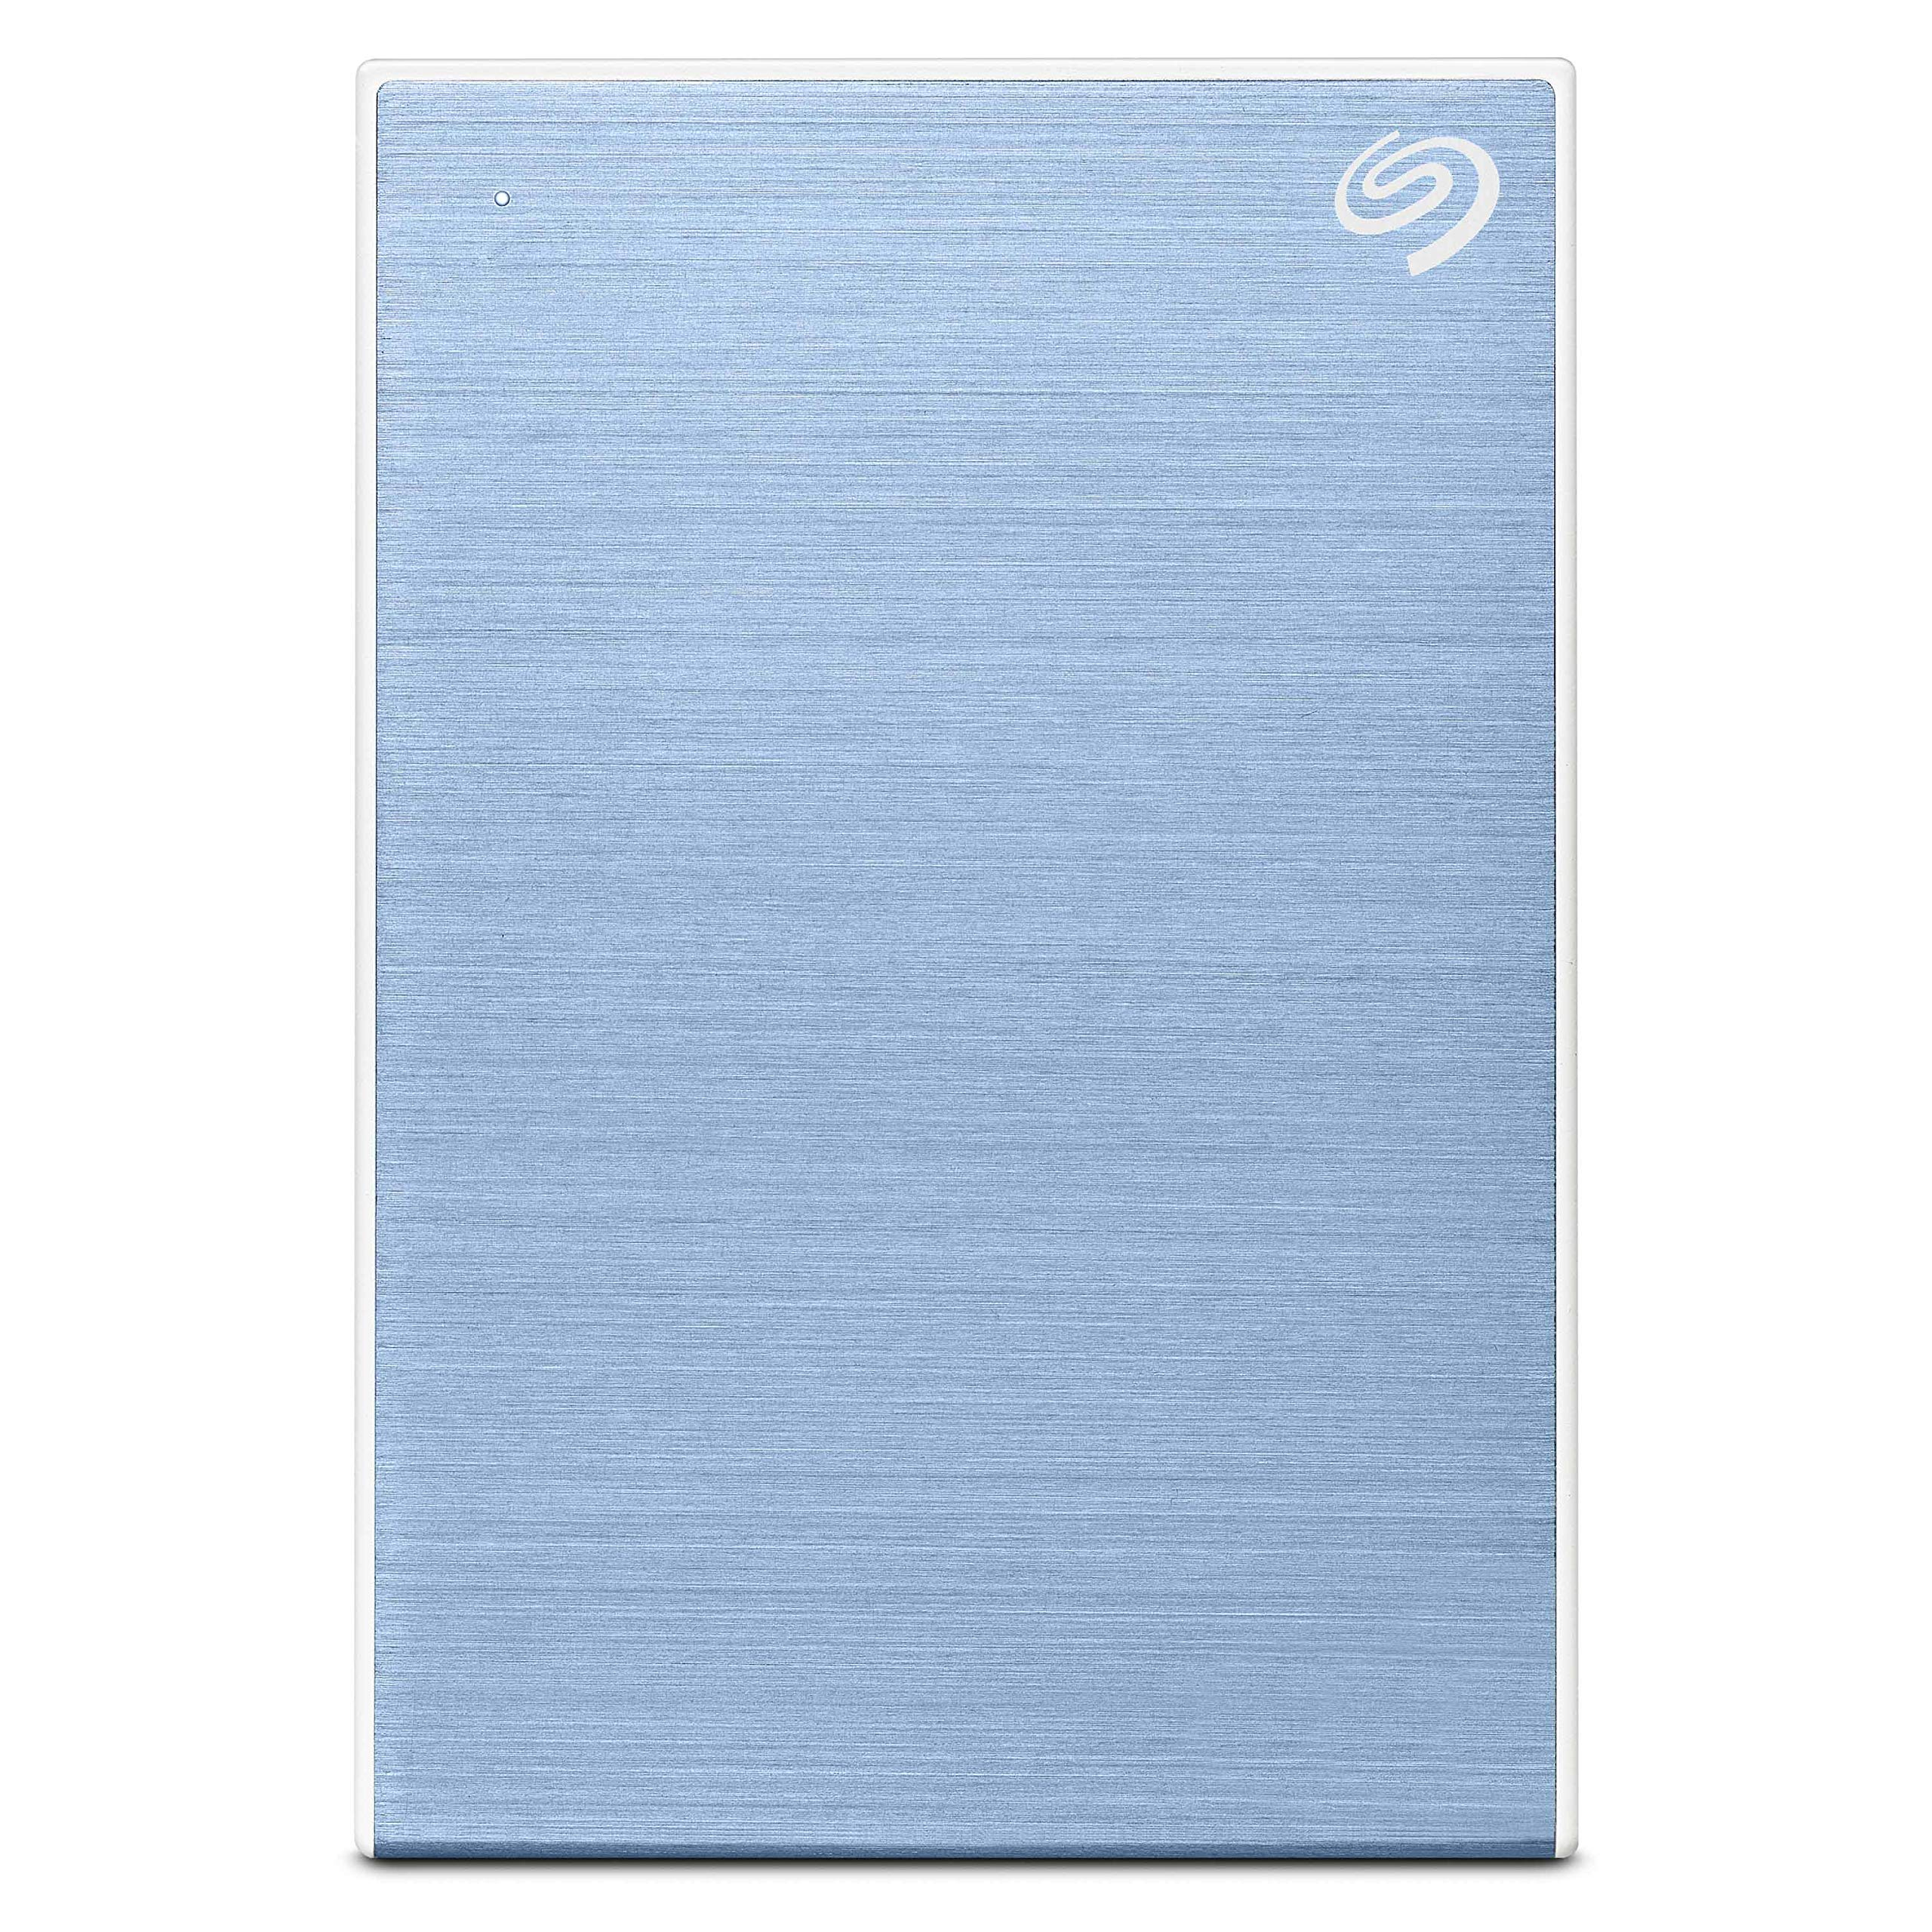 Seagate Backup Plus Slim 1TB External Hard Drive Portable HDD – Light Blue USB 3.0 for PC Laptop and Mac, 1 Year Mylio Create, 2 Months Adobe CC Photography (STHN1000402) product image